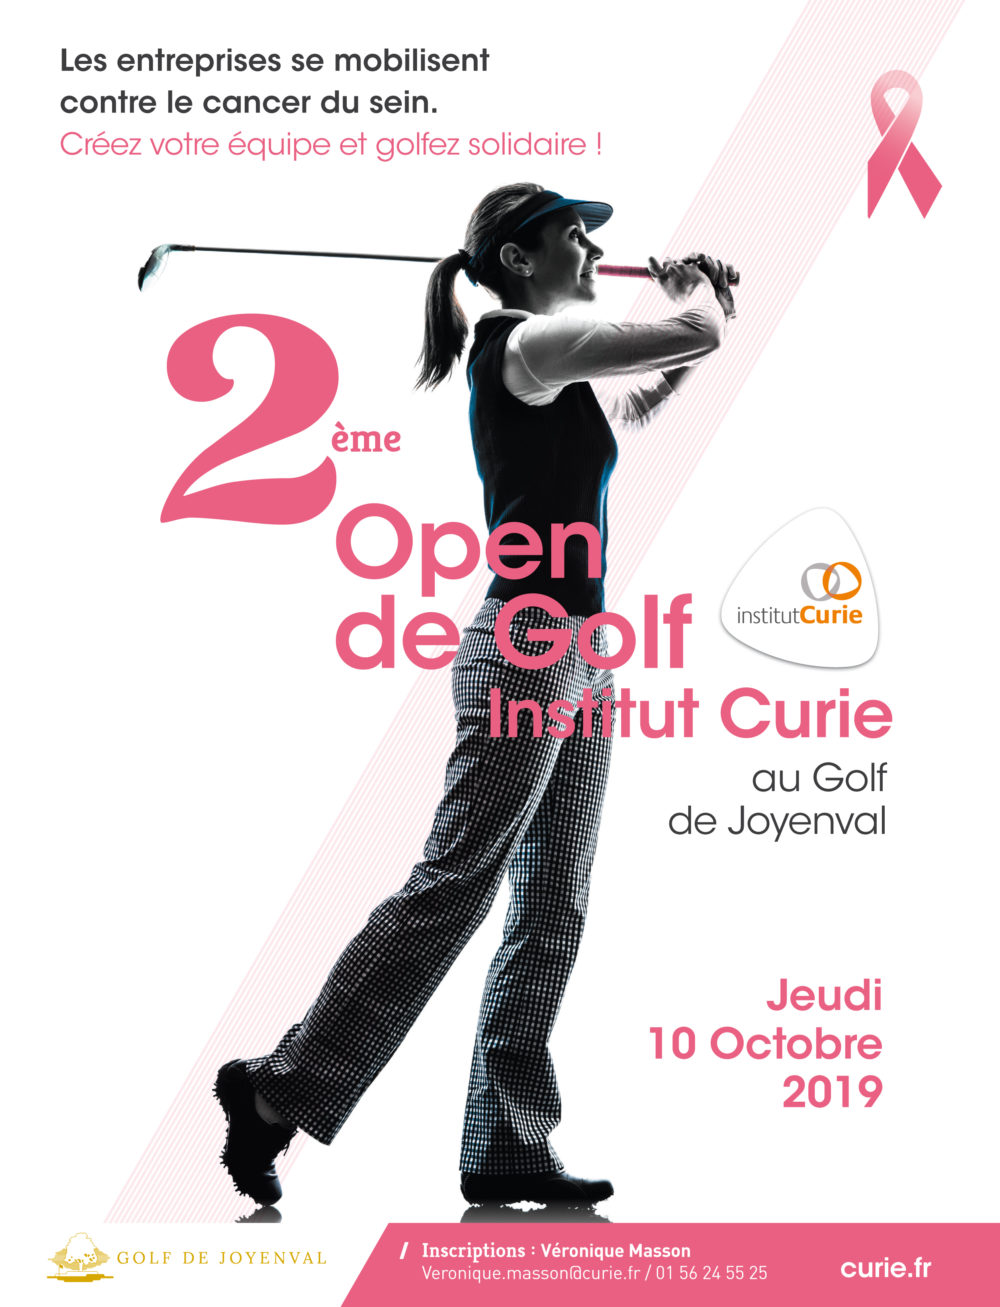 2ème Open de Golf Institut Curie